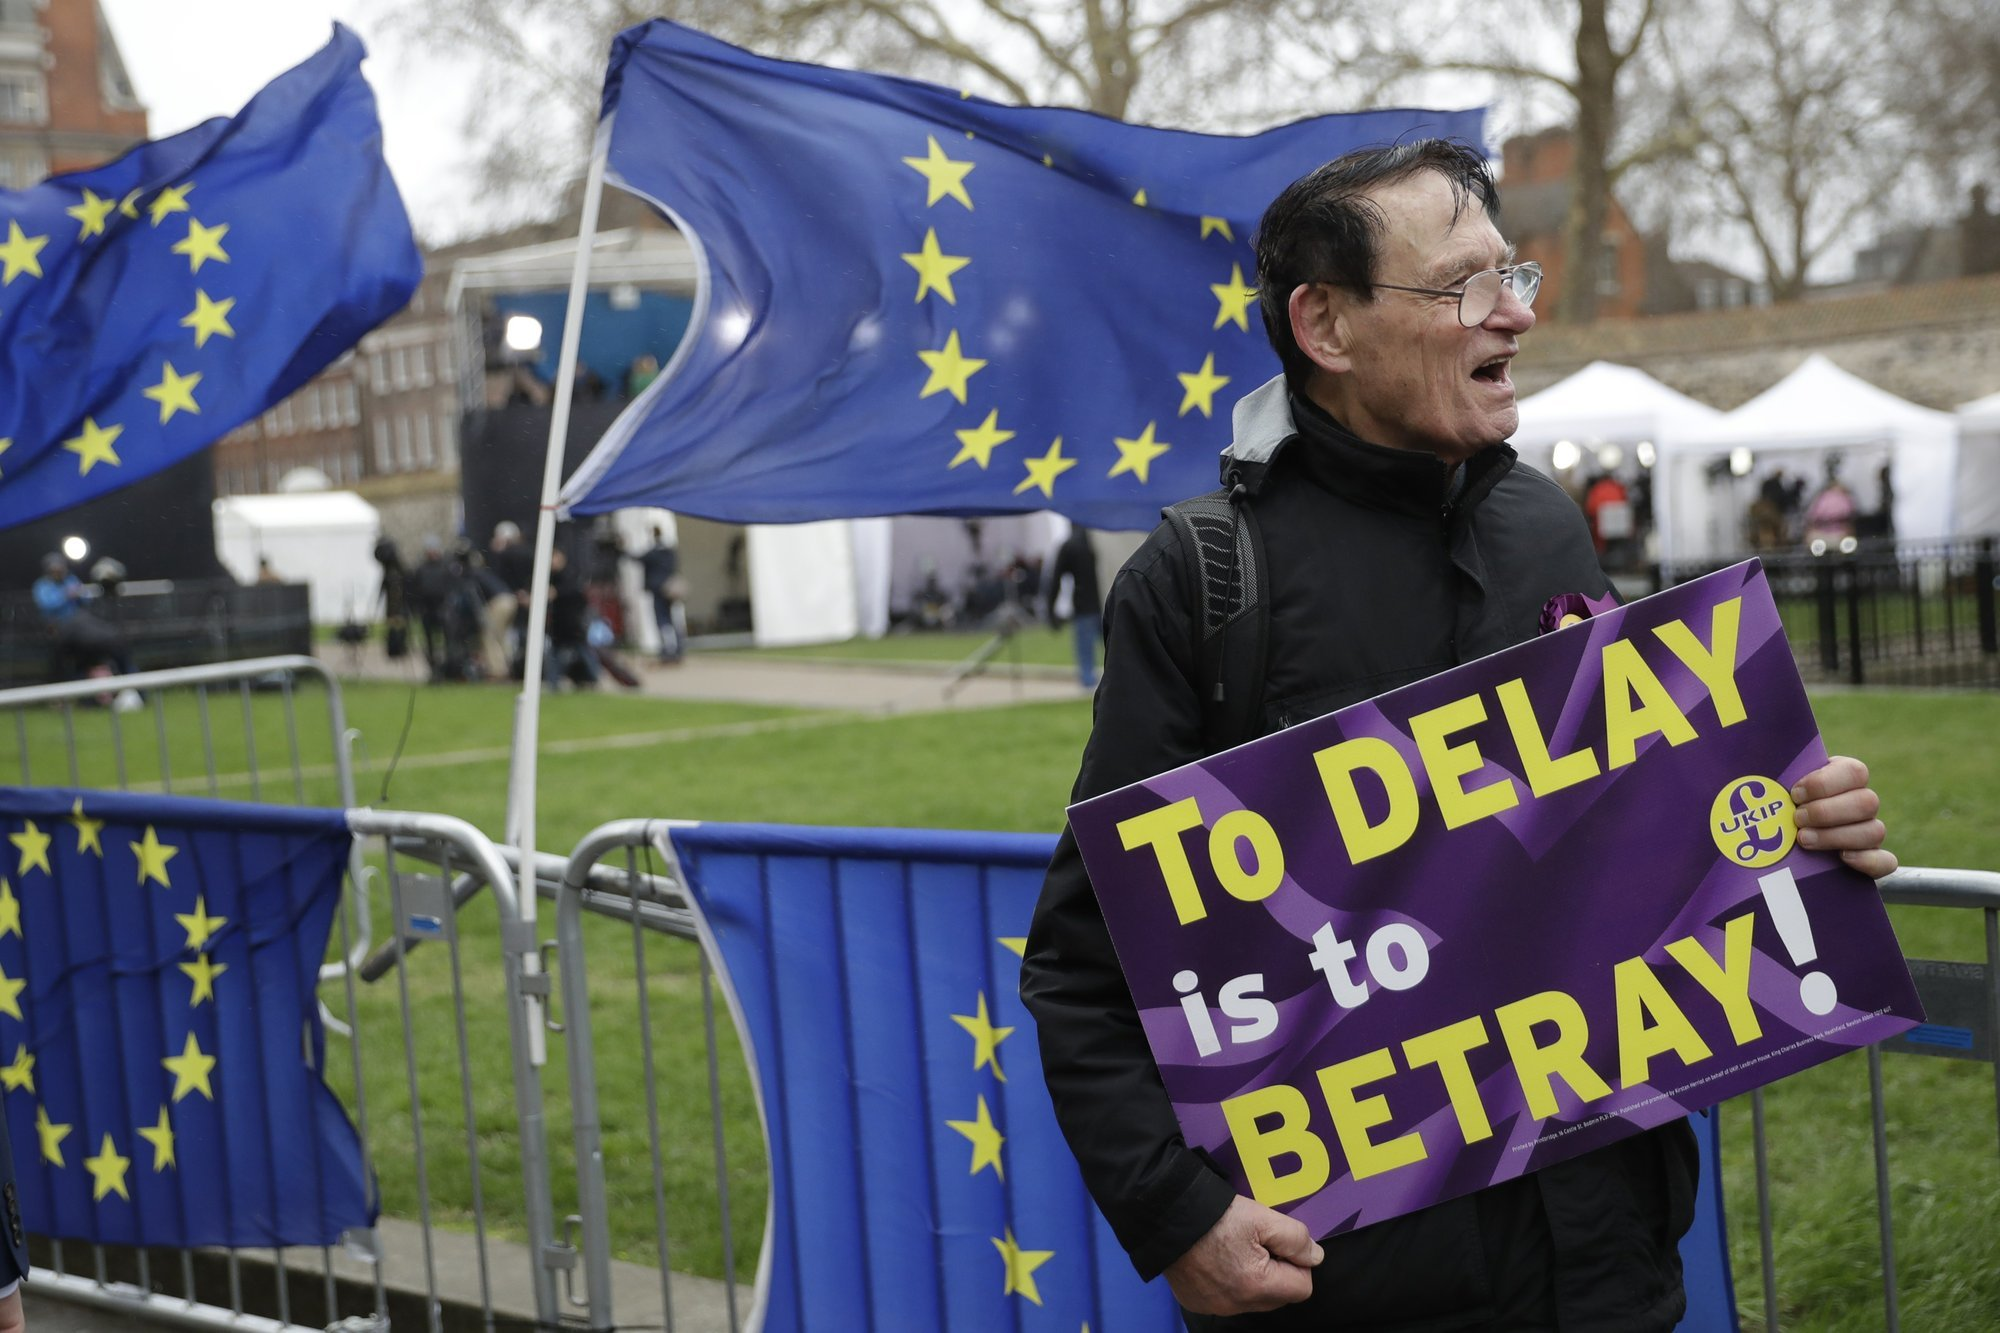 Pro-Brexit leave the European Union supporters take part in a protest outside the Houses of Parliament in London on Tuesday, March 12. — AP